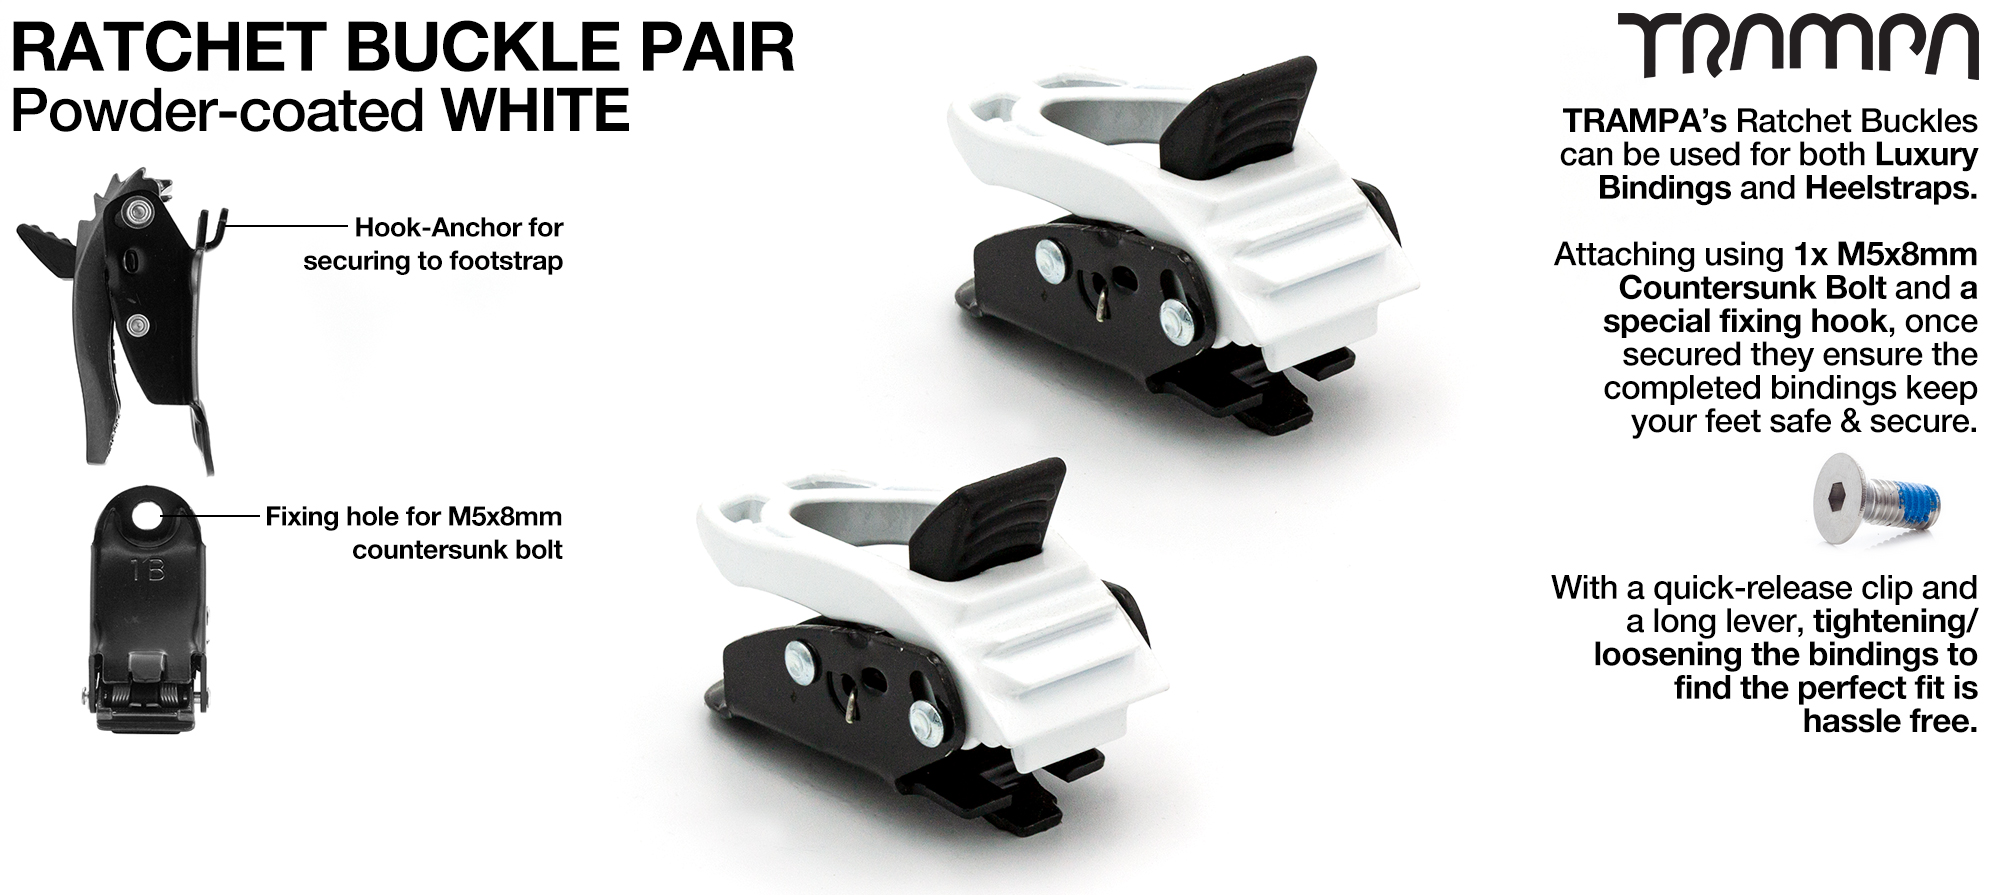 White Powder Coated Ratchet Buckles x 2